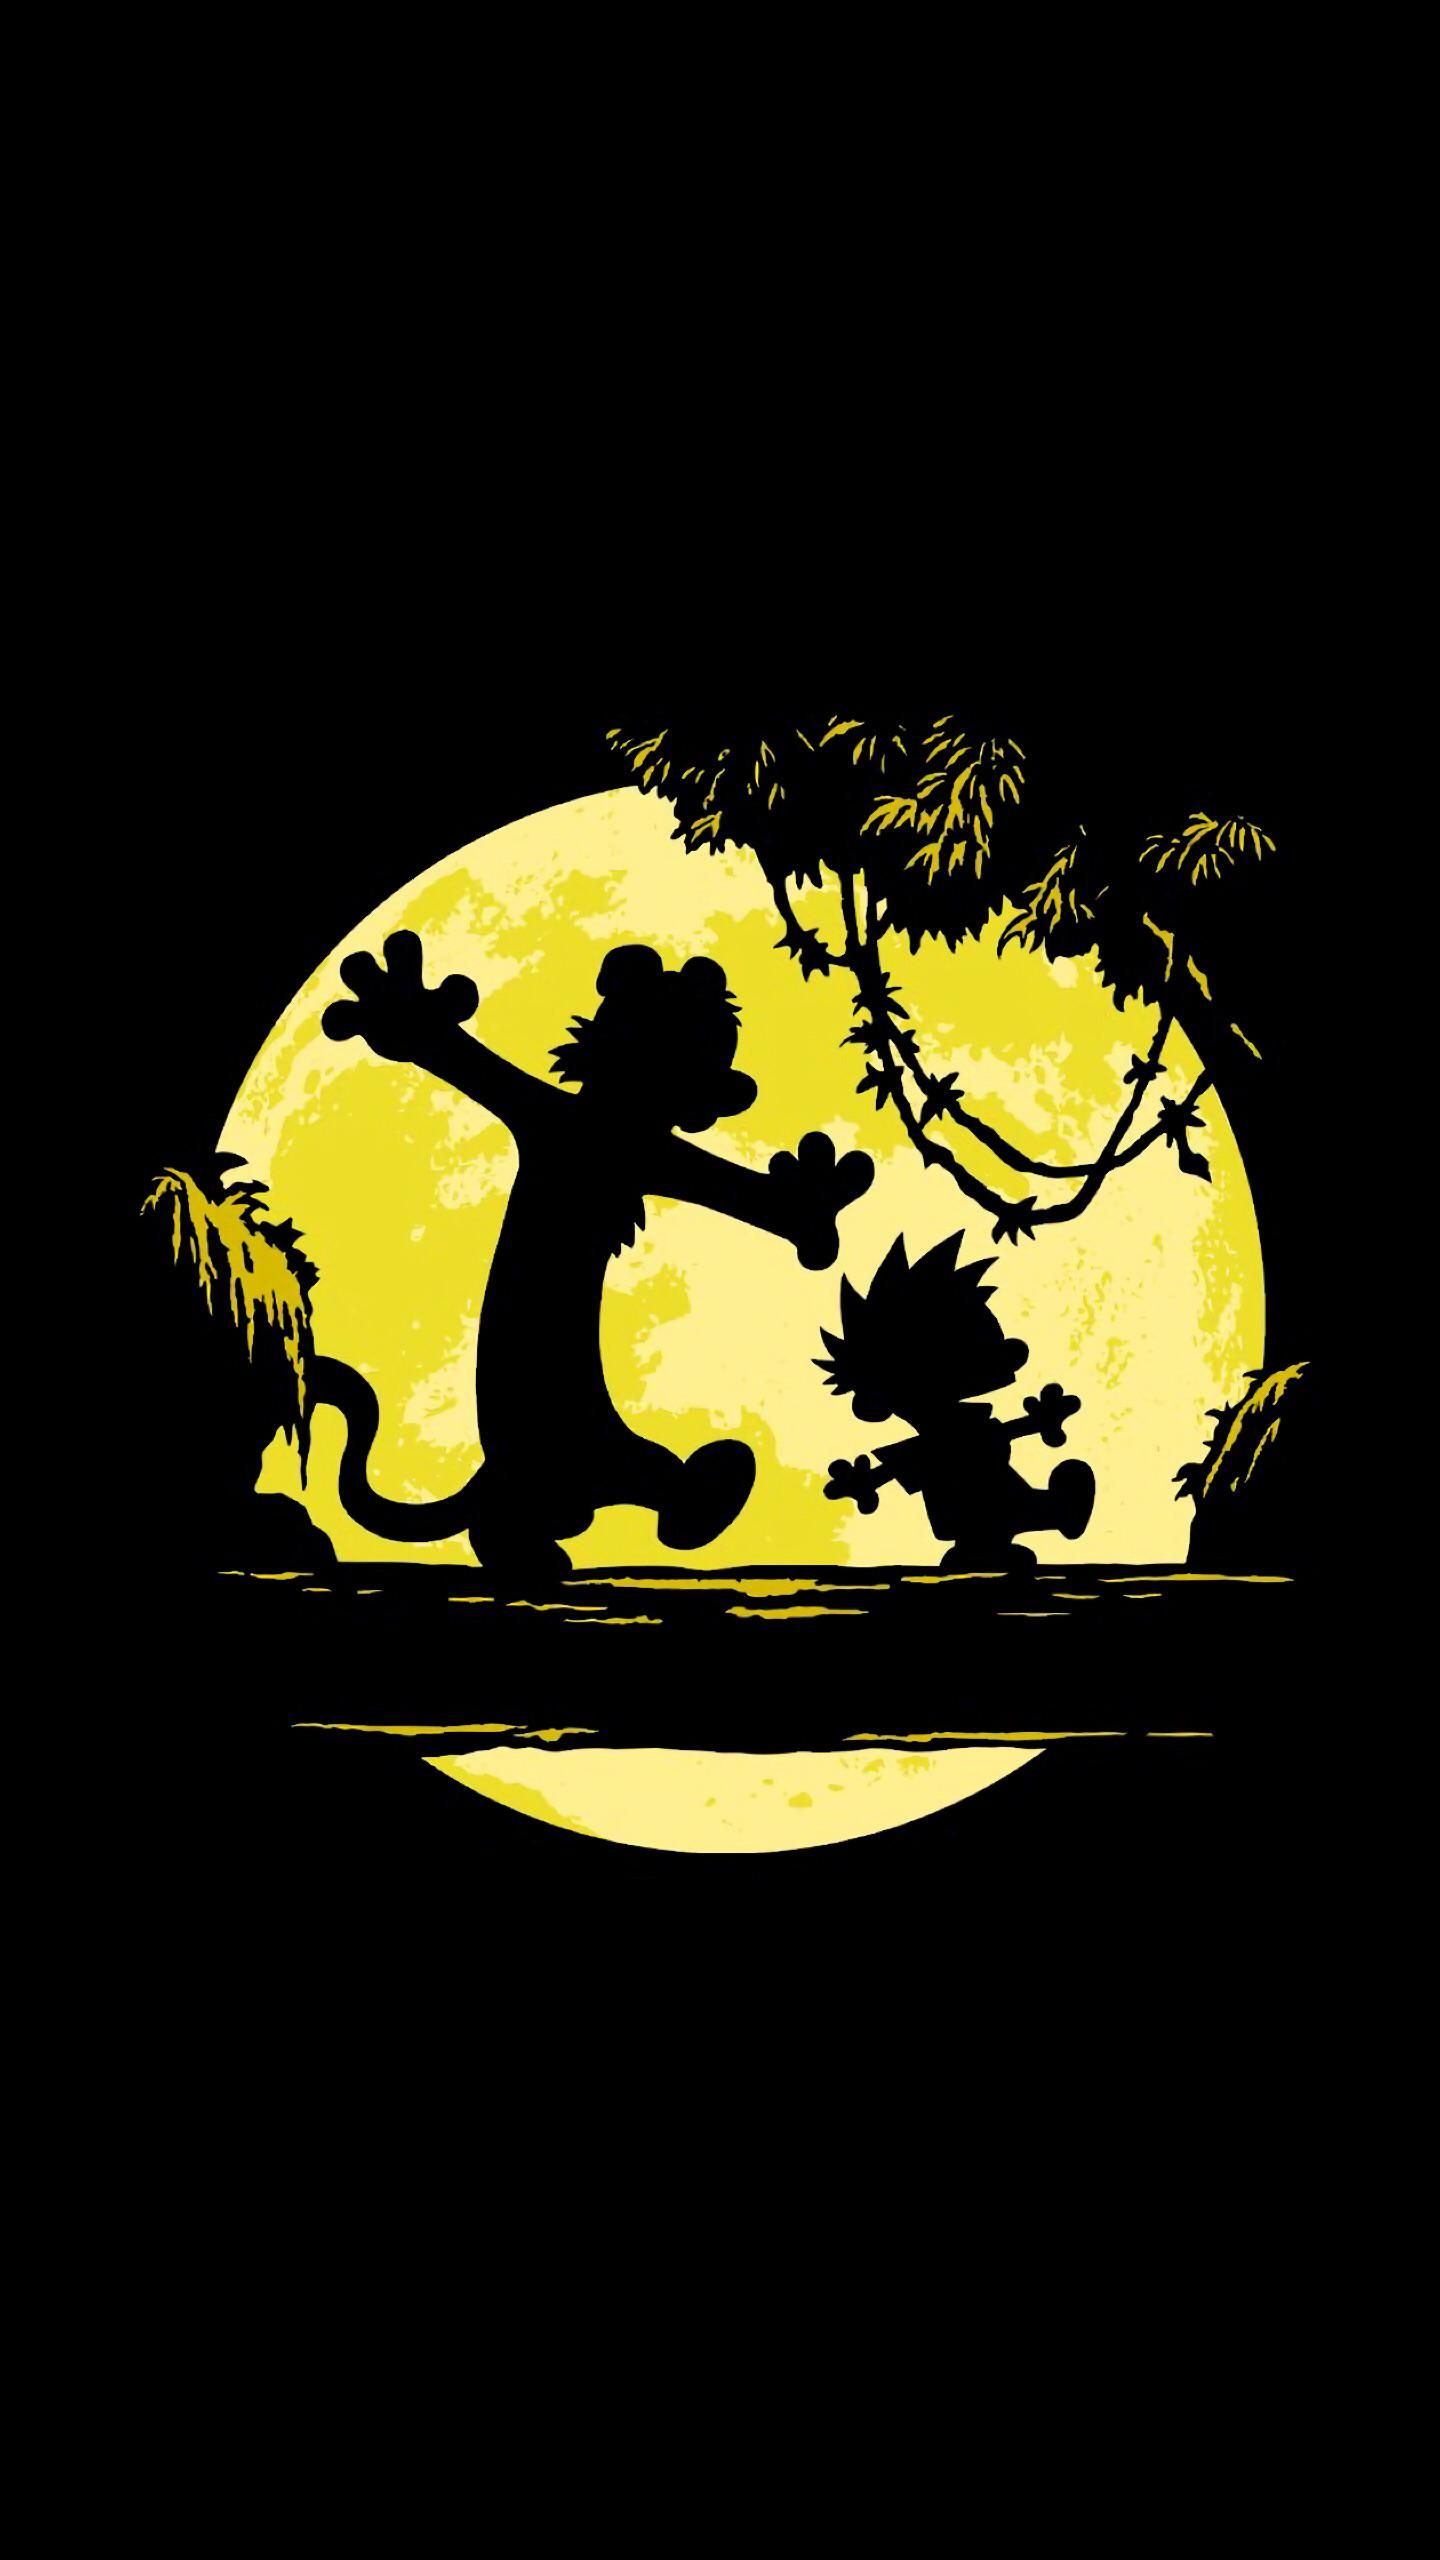 Calvin And Hobbes Calvin And Hobbes Wallpaper Calvin And Hobbes Calvin And Hobbes Comics